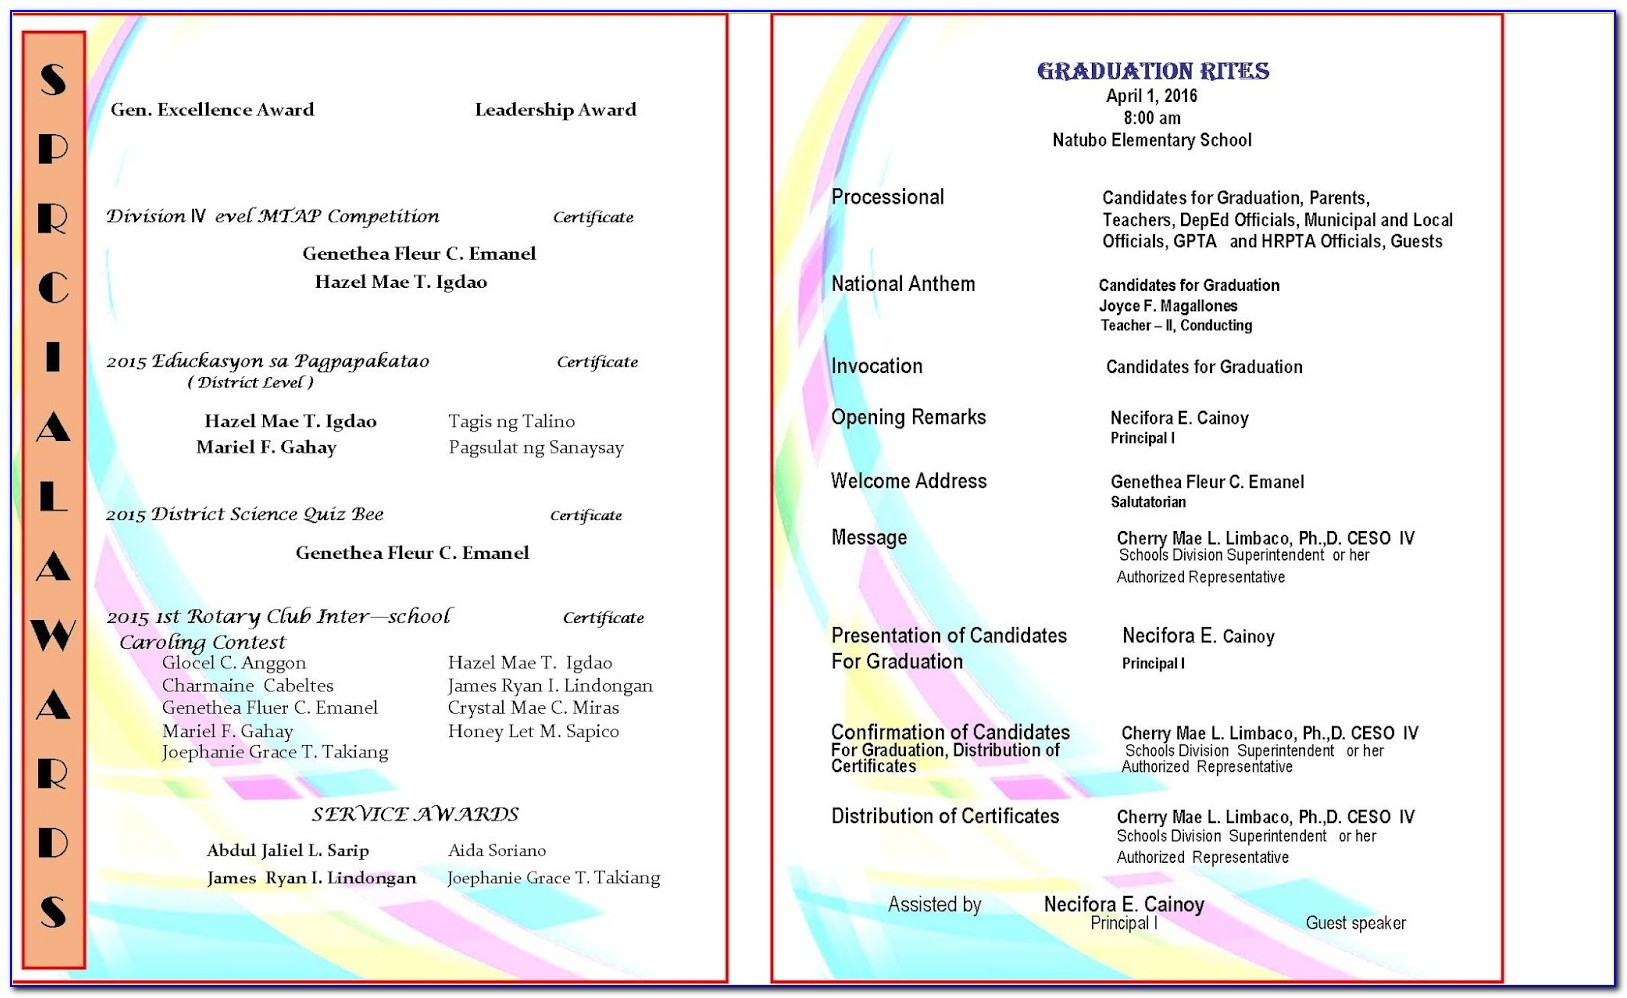 Graduation Ceremony Program Wording